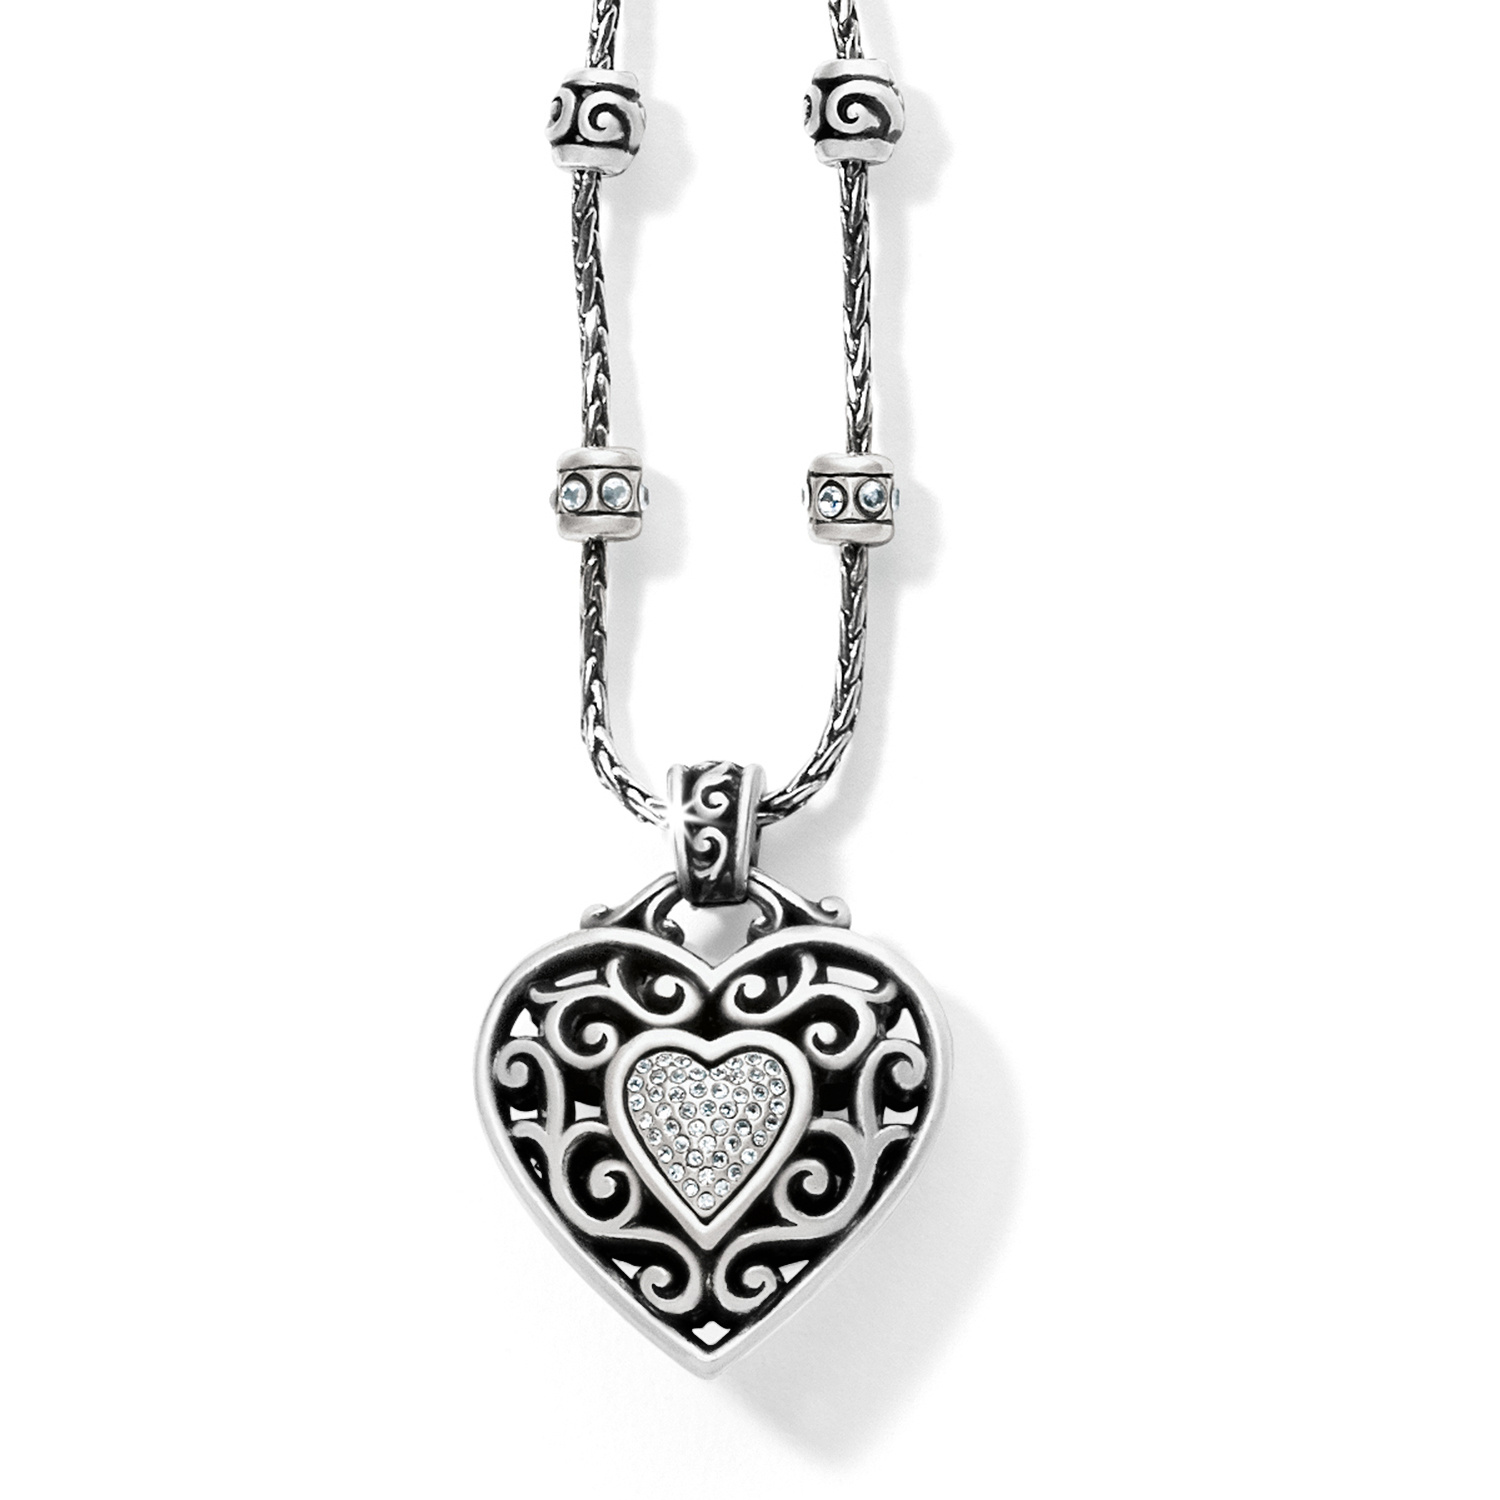 day appl gifts jtn jewellery heart valentines silver bling sterling slide az love jewelry pendant necklace